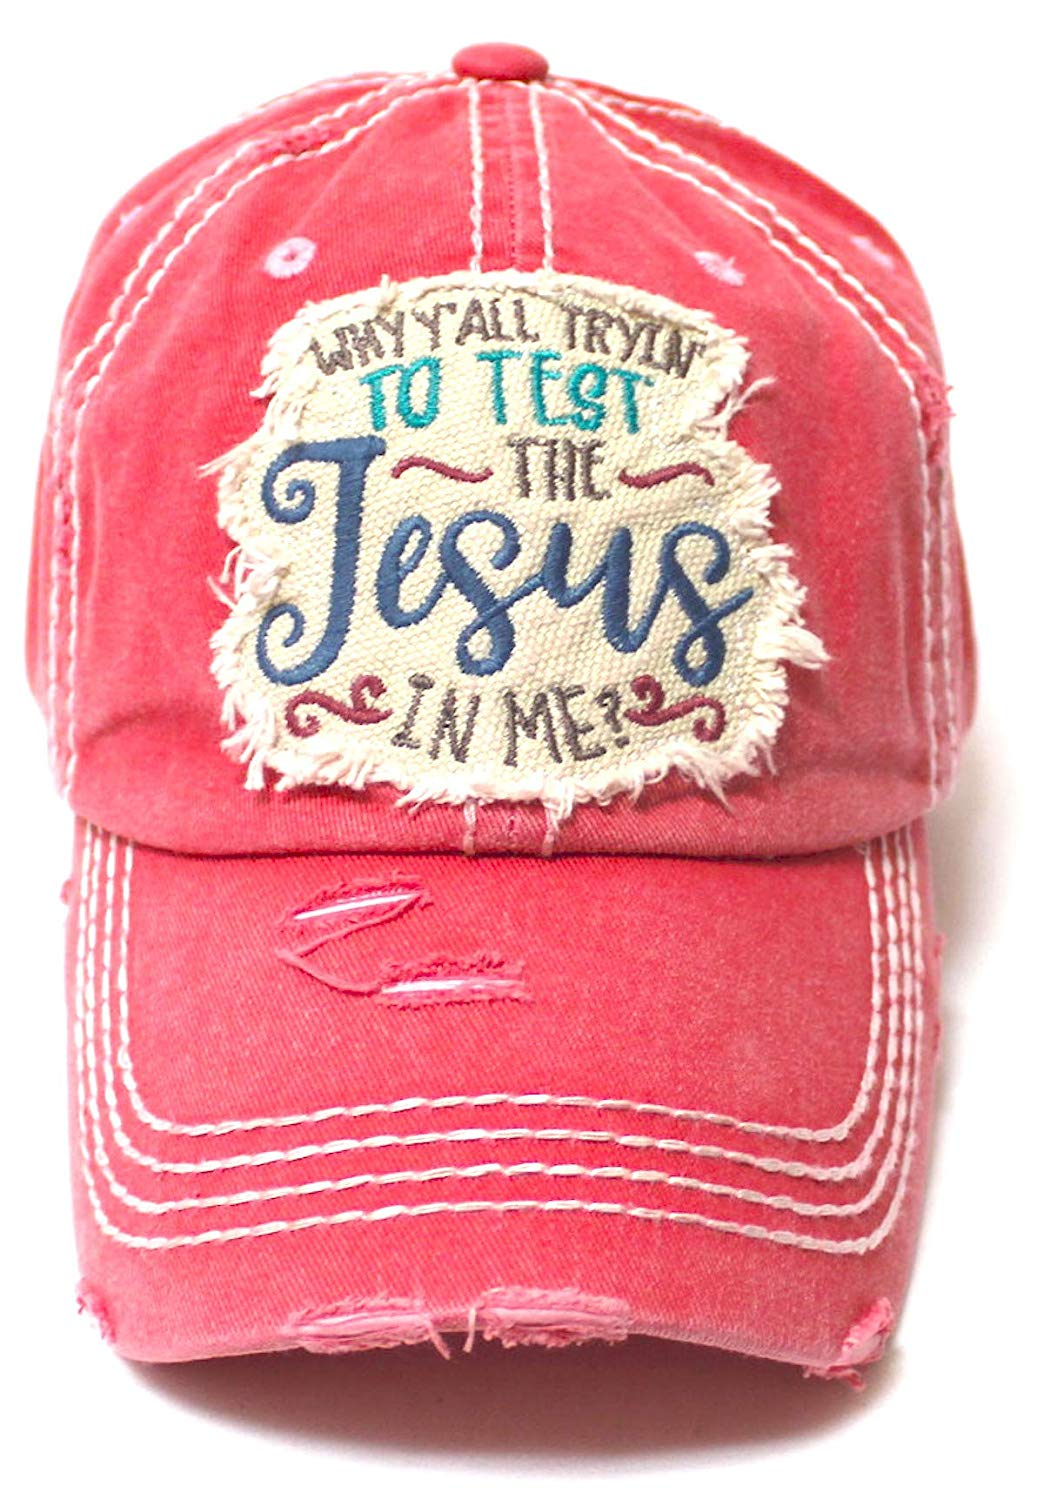 Women's Ballcap Why Y'all Tryin' to Test The Jesus in Me? Christian Patch Embroidery Vintage Hat, Rose Pink - Caps 'N Vintage